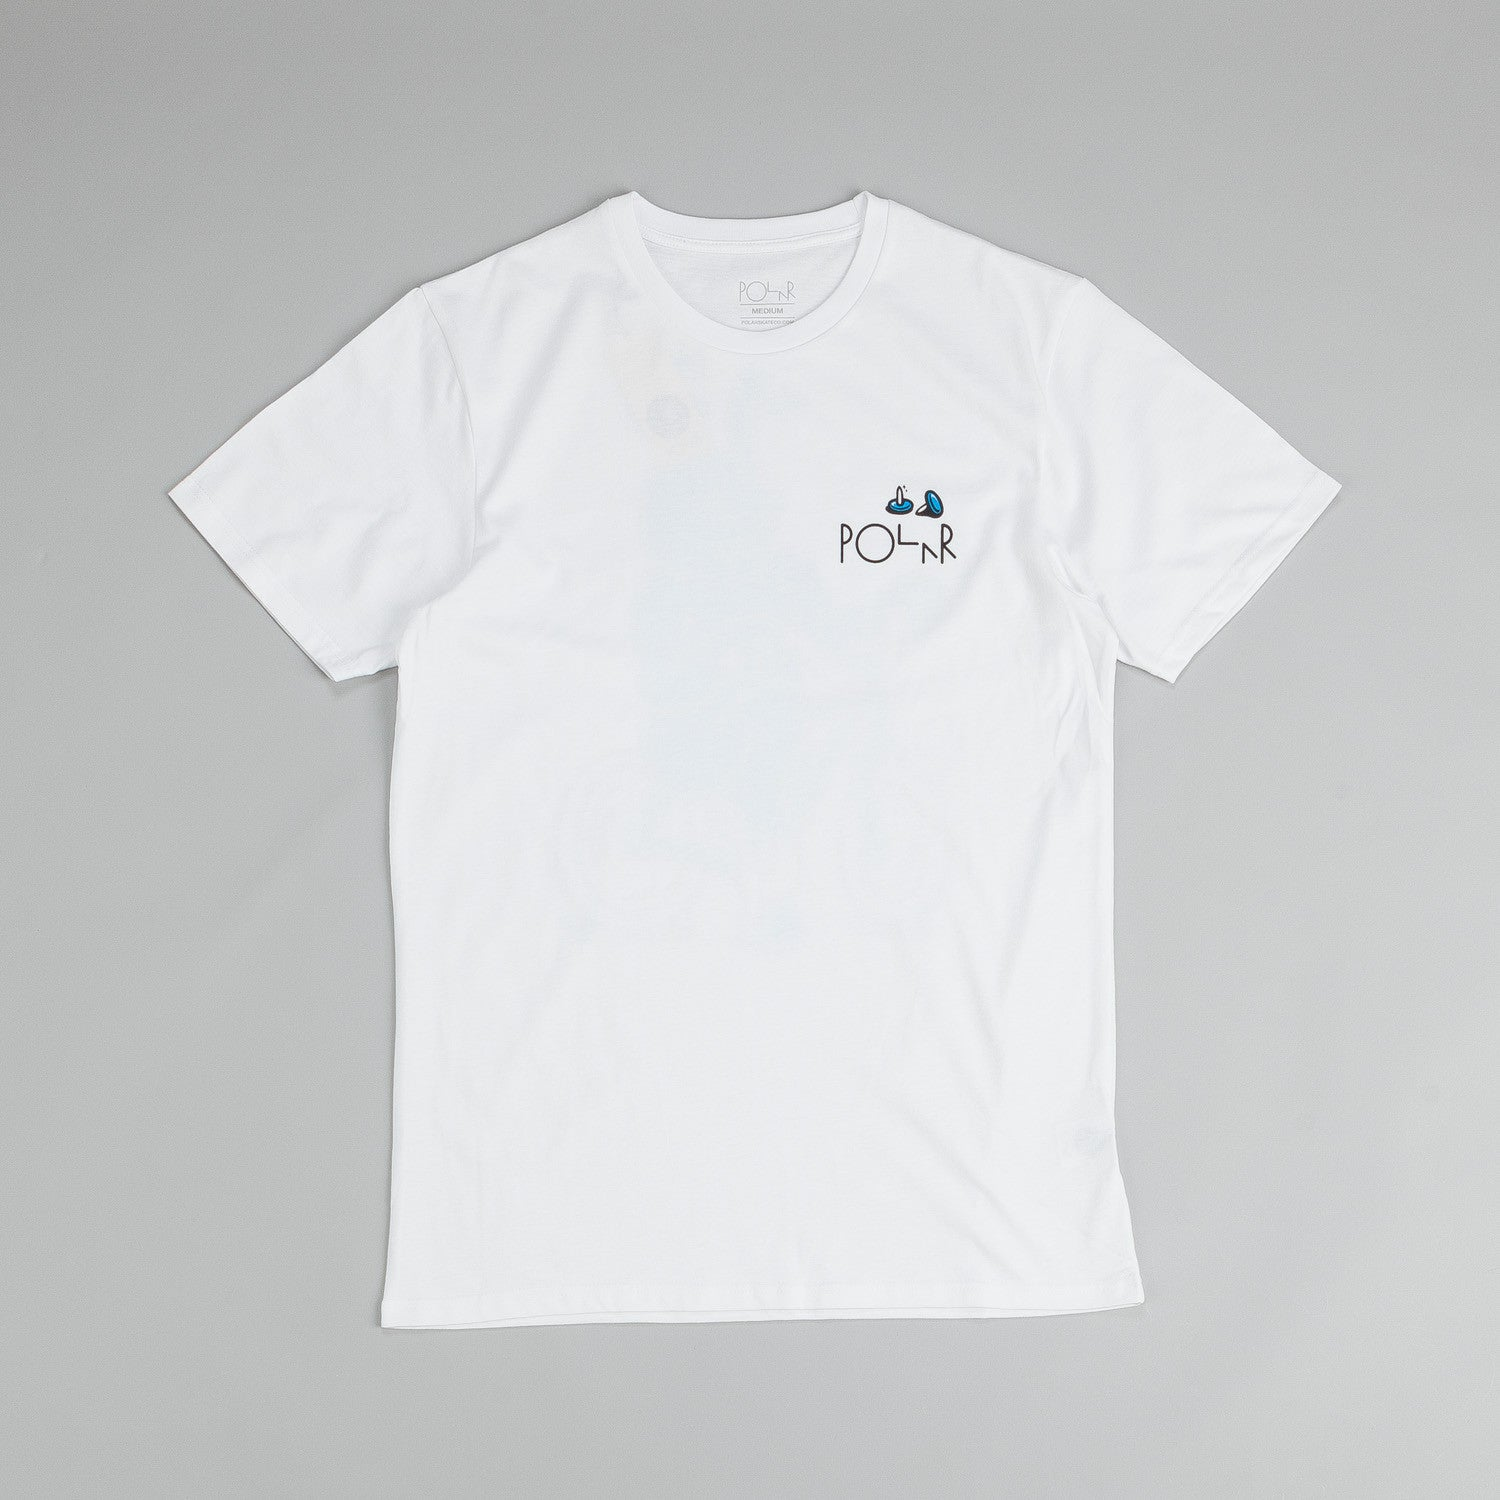 Polar Flat Tyre T Shirt White / Blue